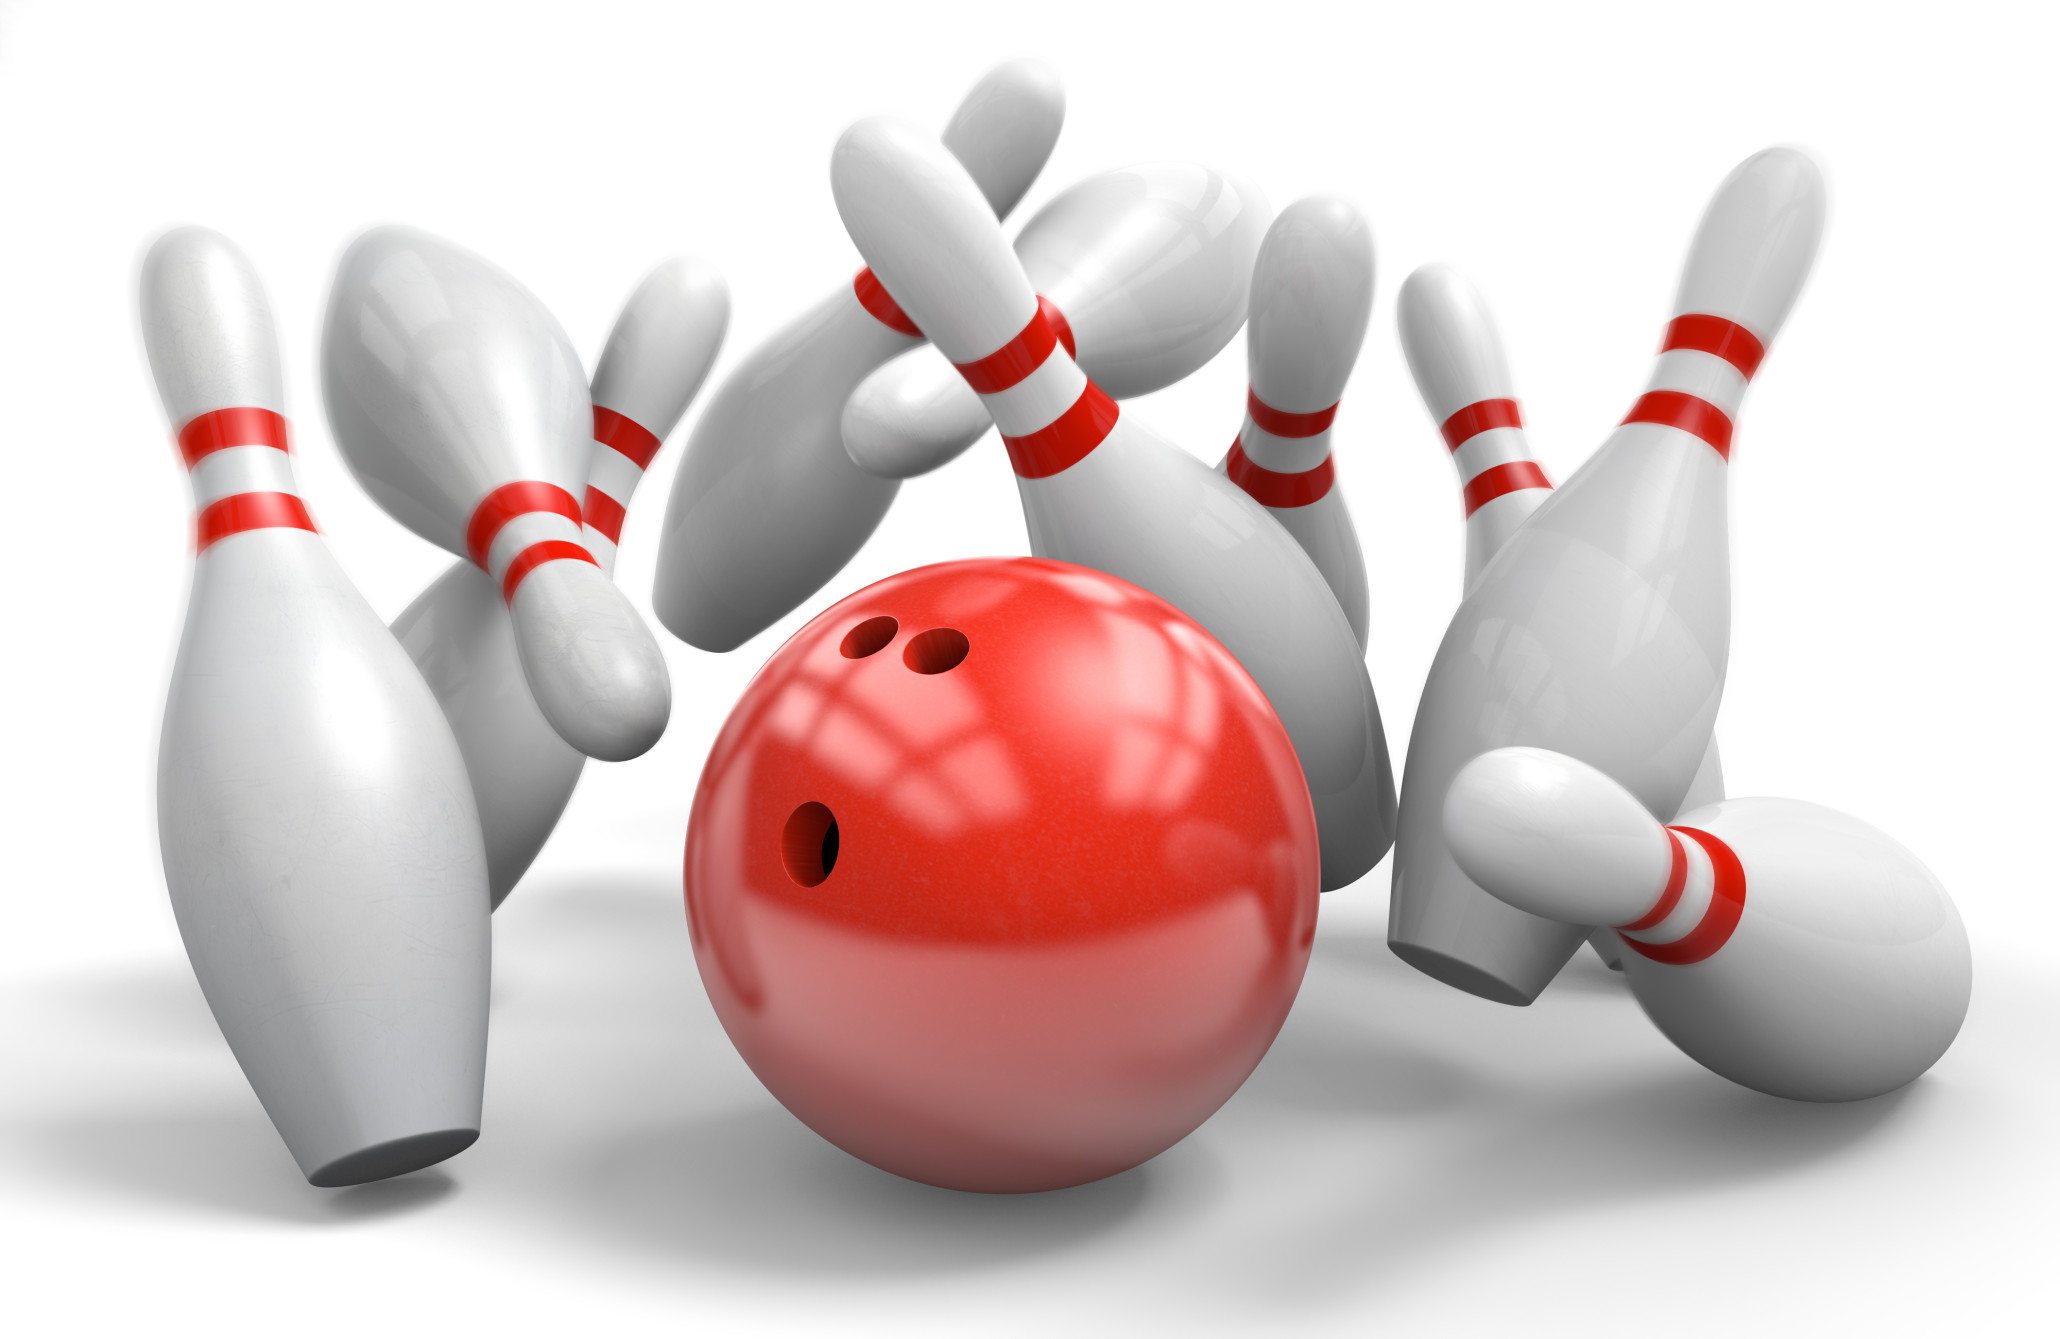 bigstock-Red-bowling-ball-knocking-over-81227798-e1440198057985